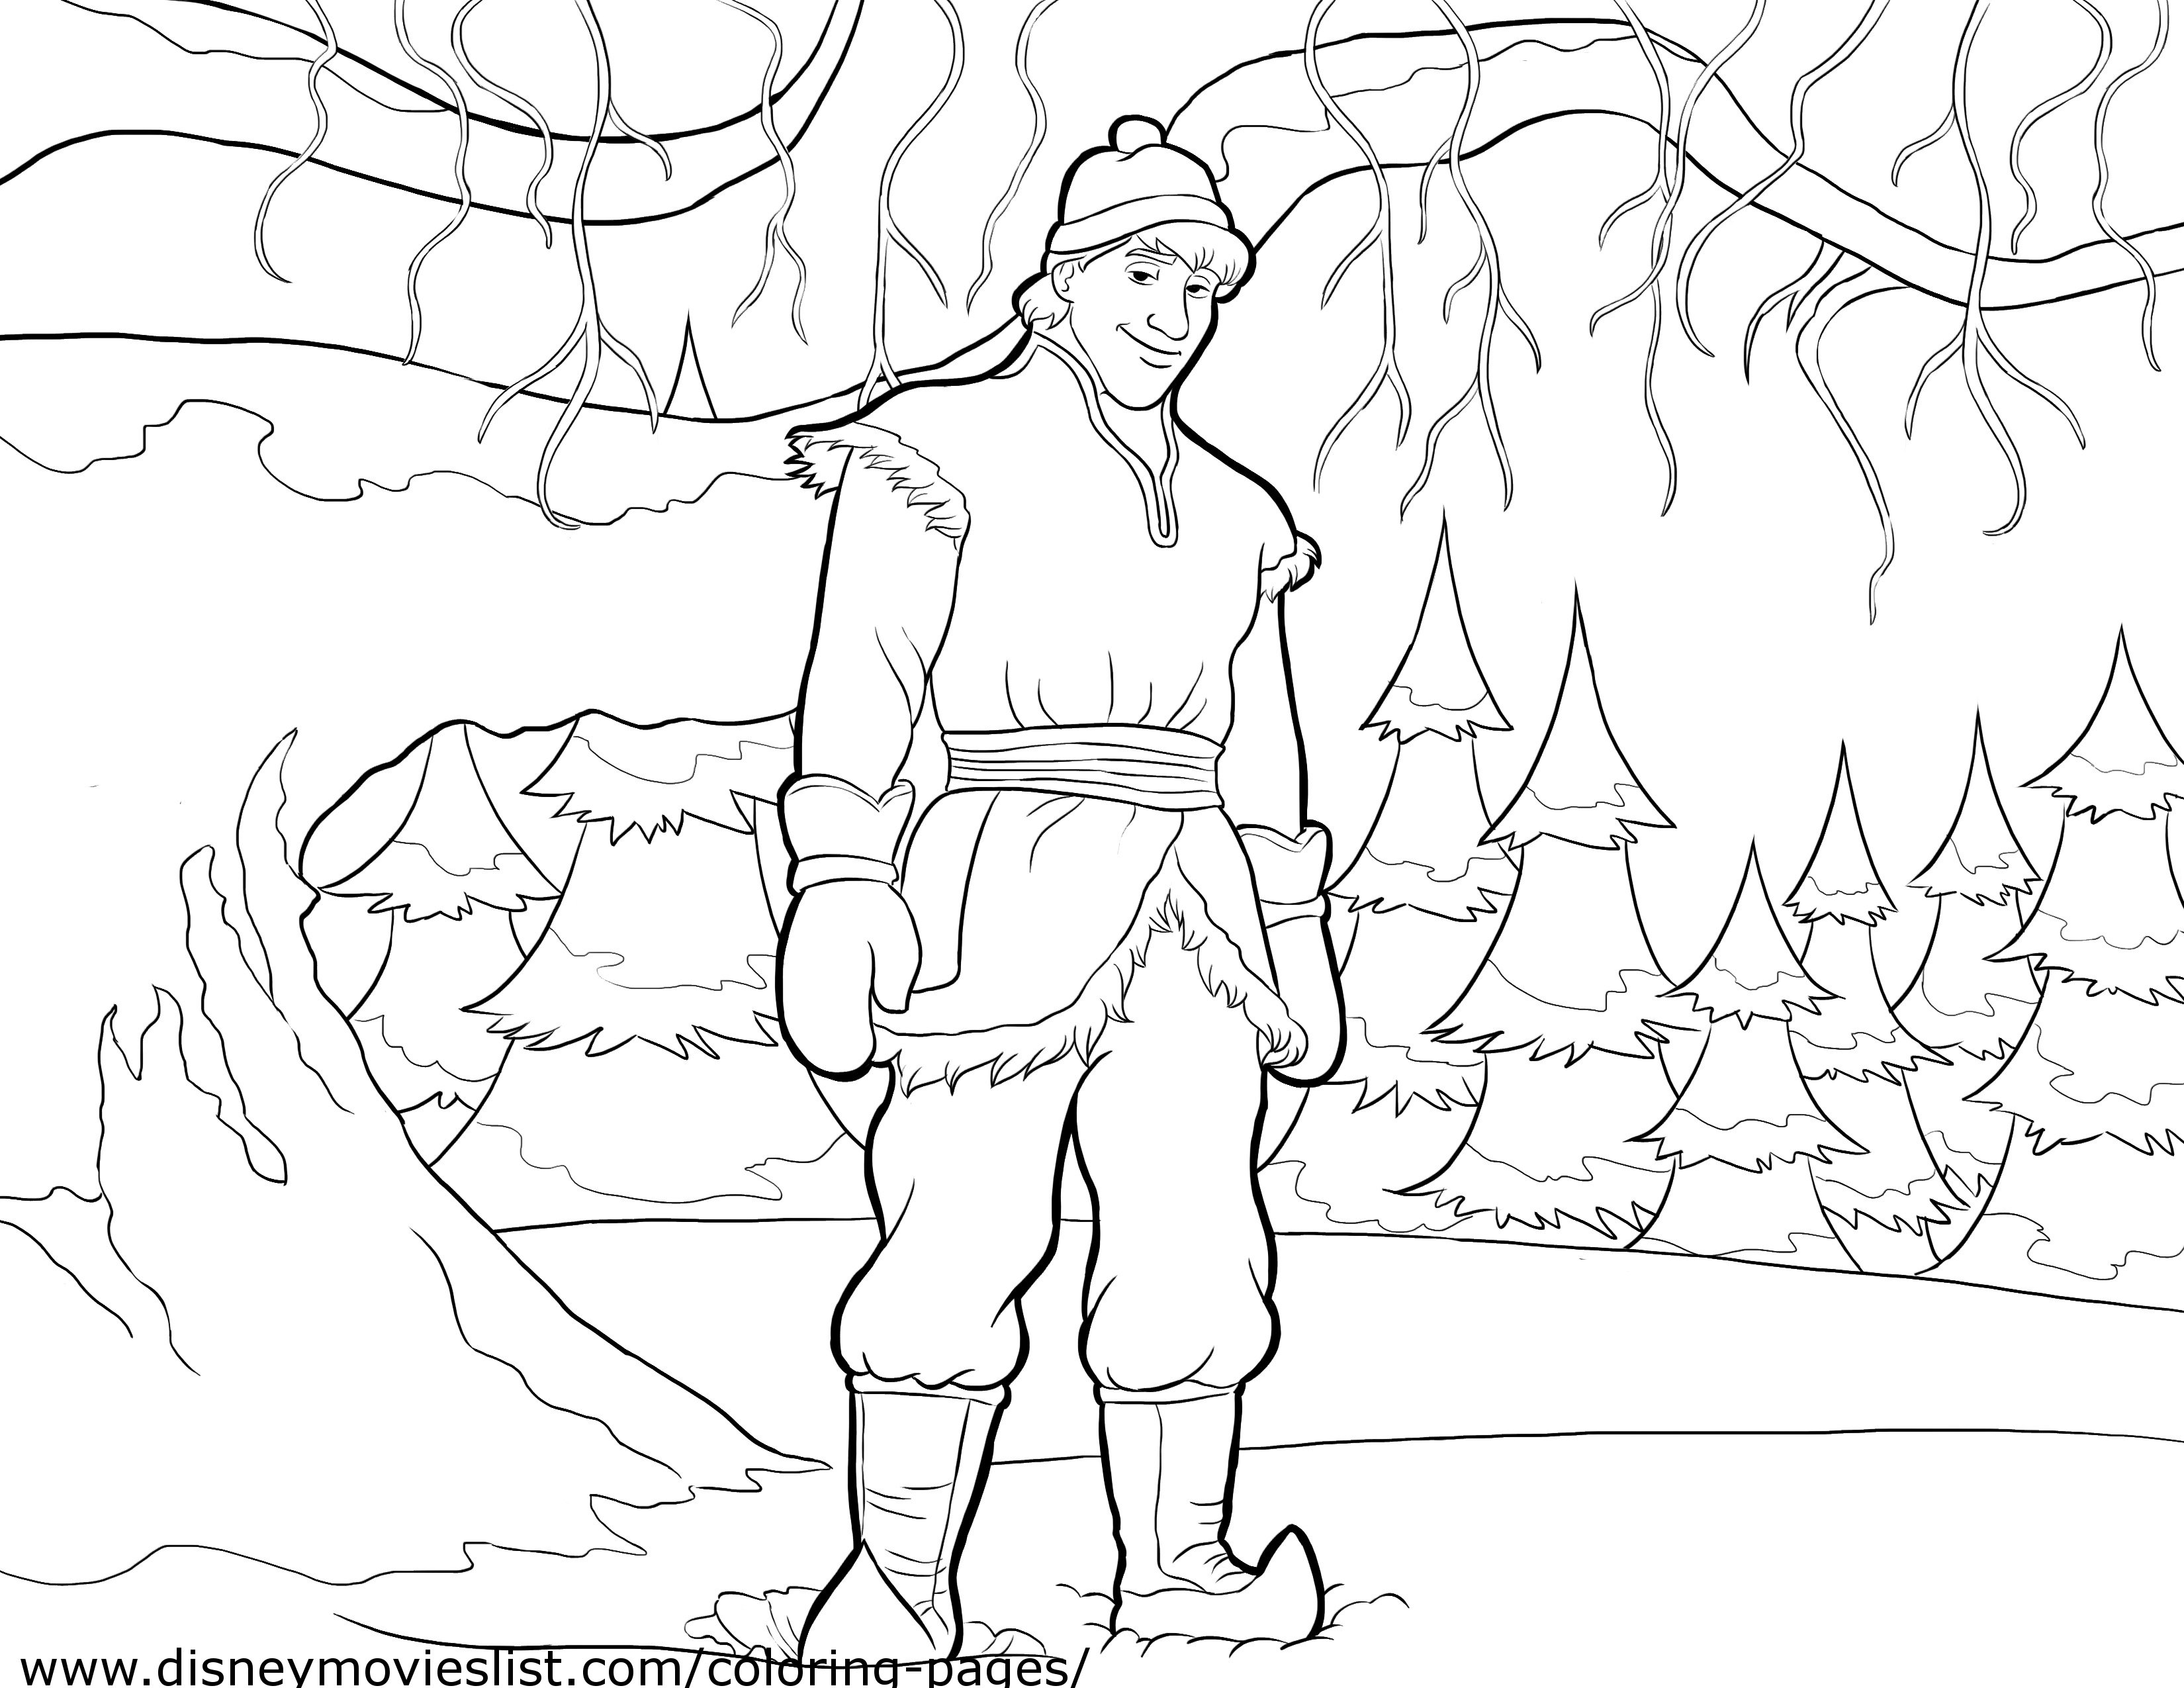 Frozen Coloring Pages Kristoff : Kristoff coloring page anna and photo